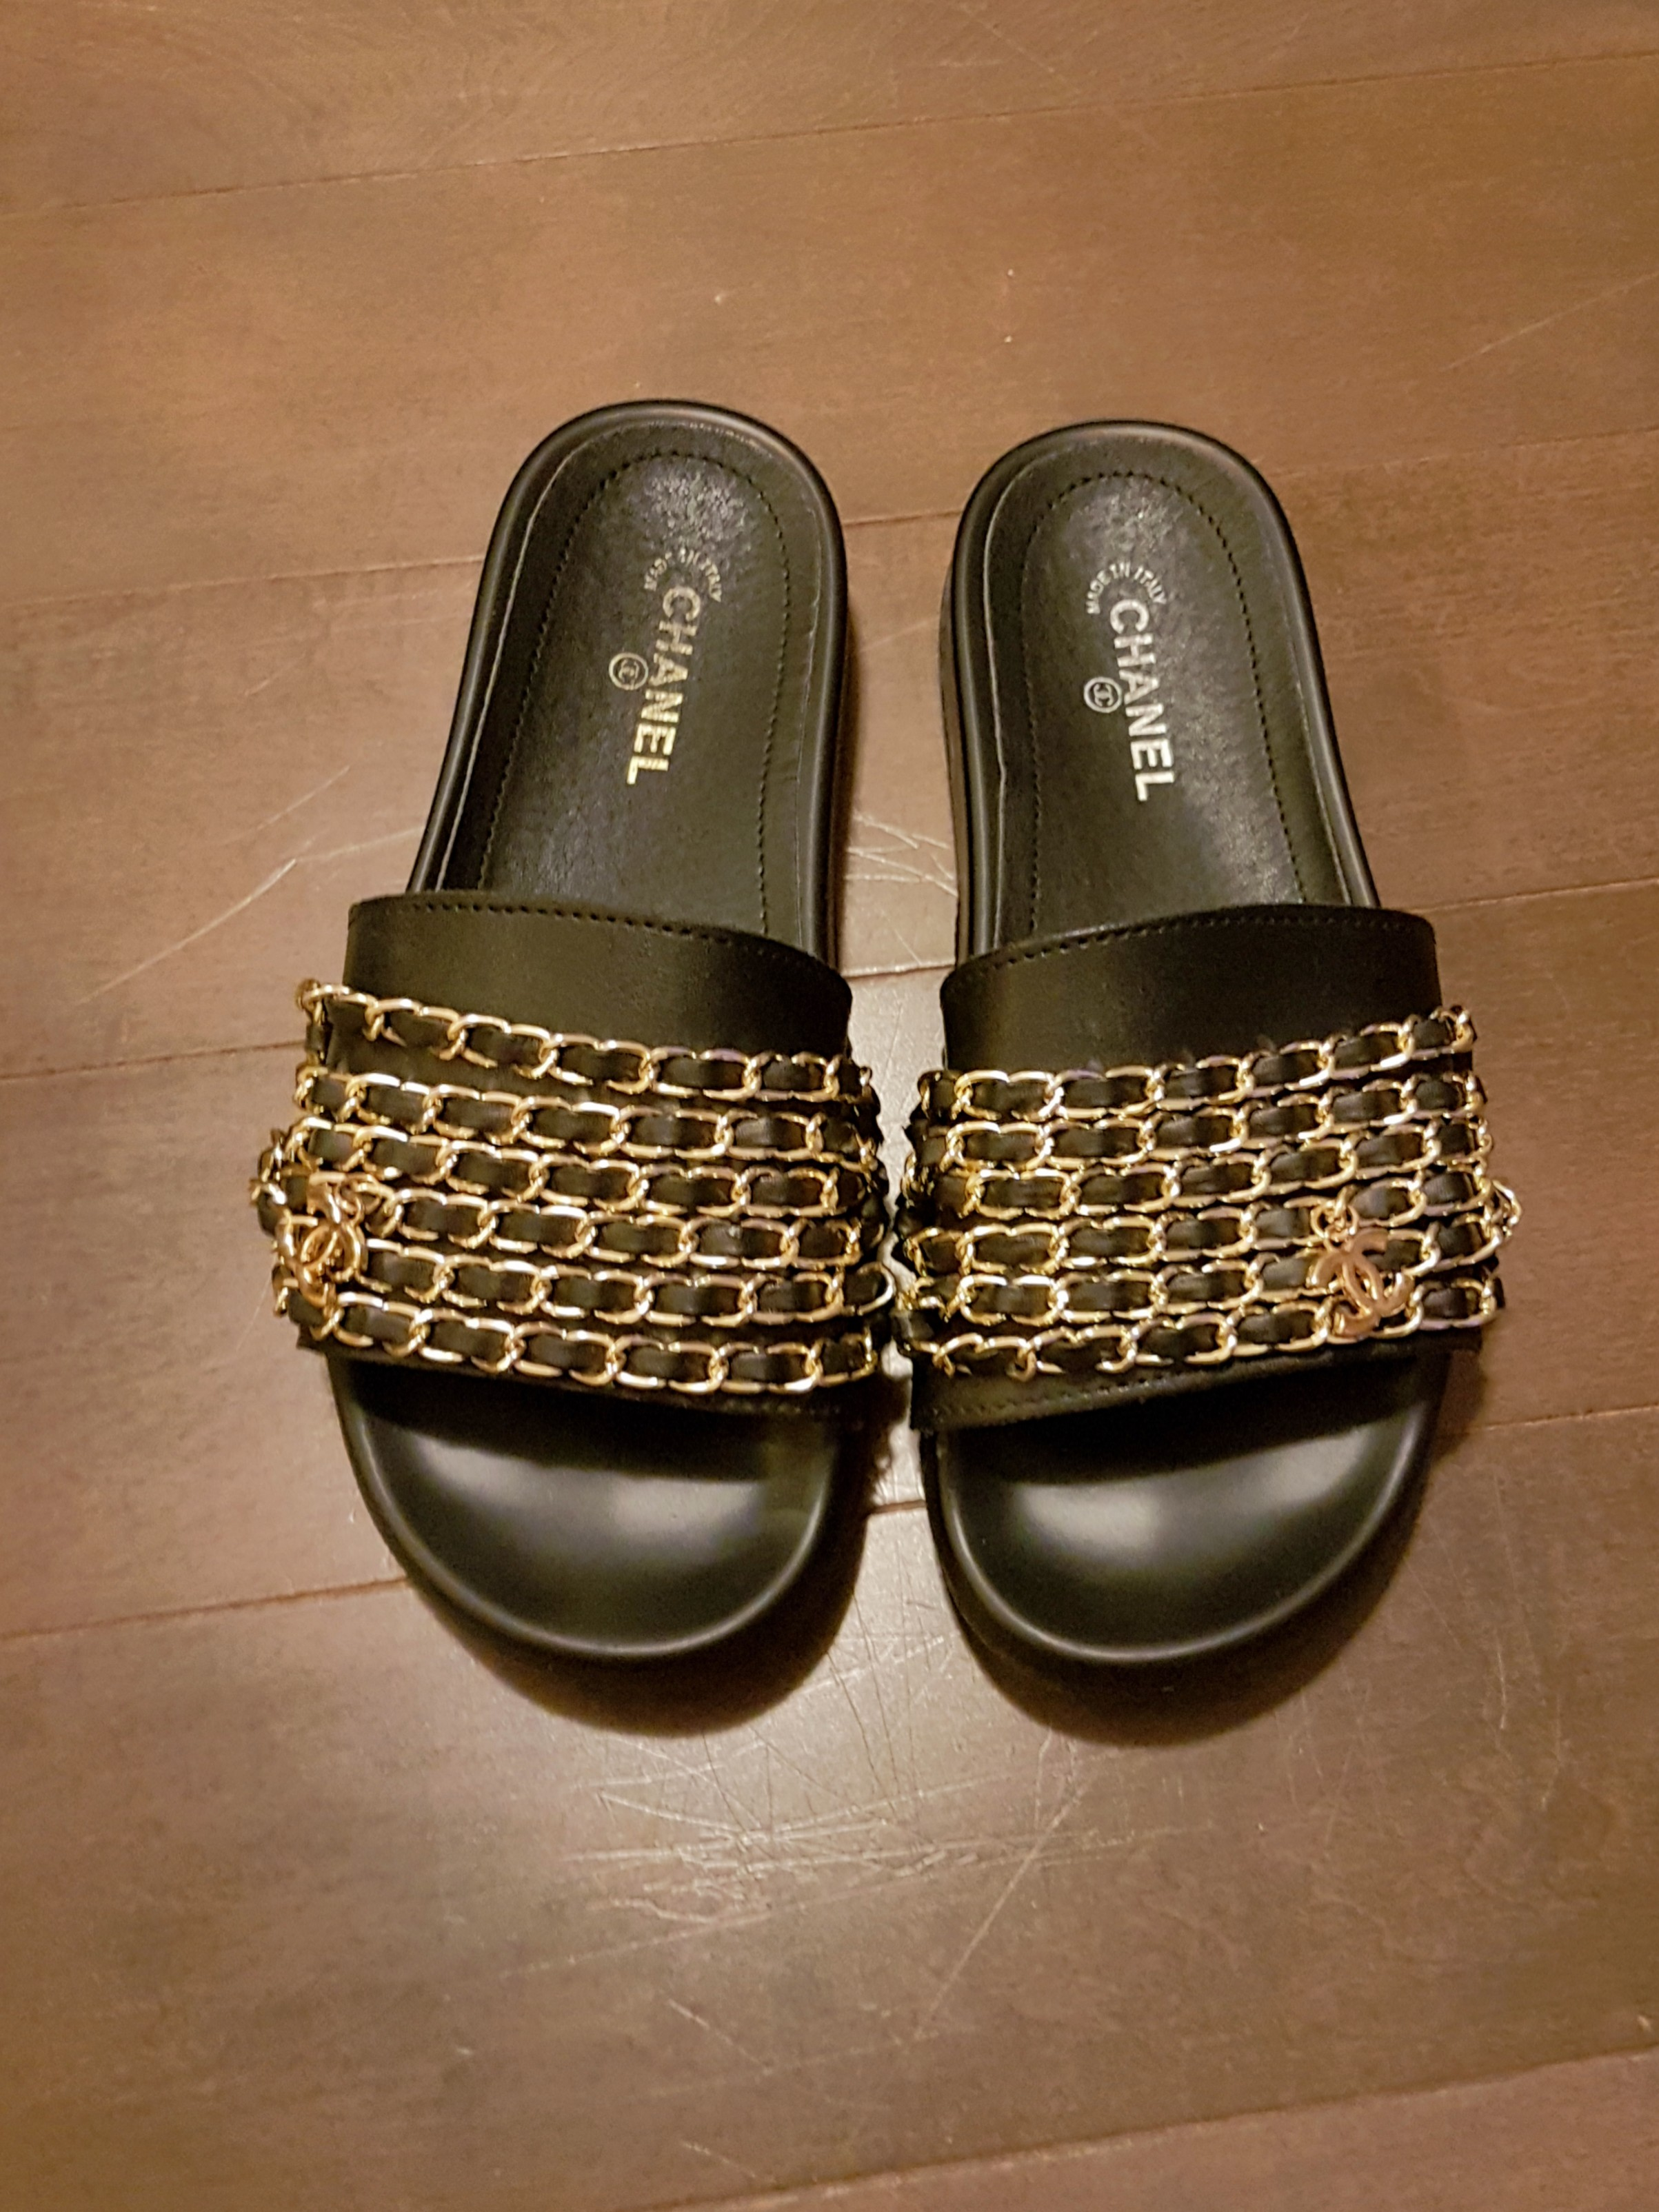 Slides with chains